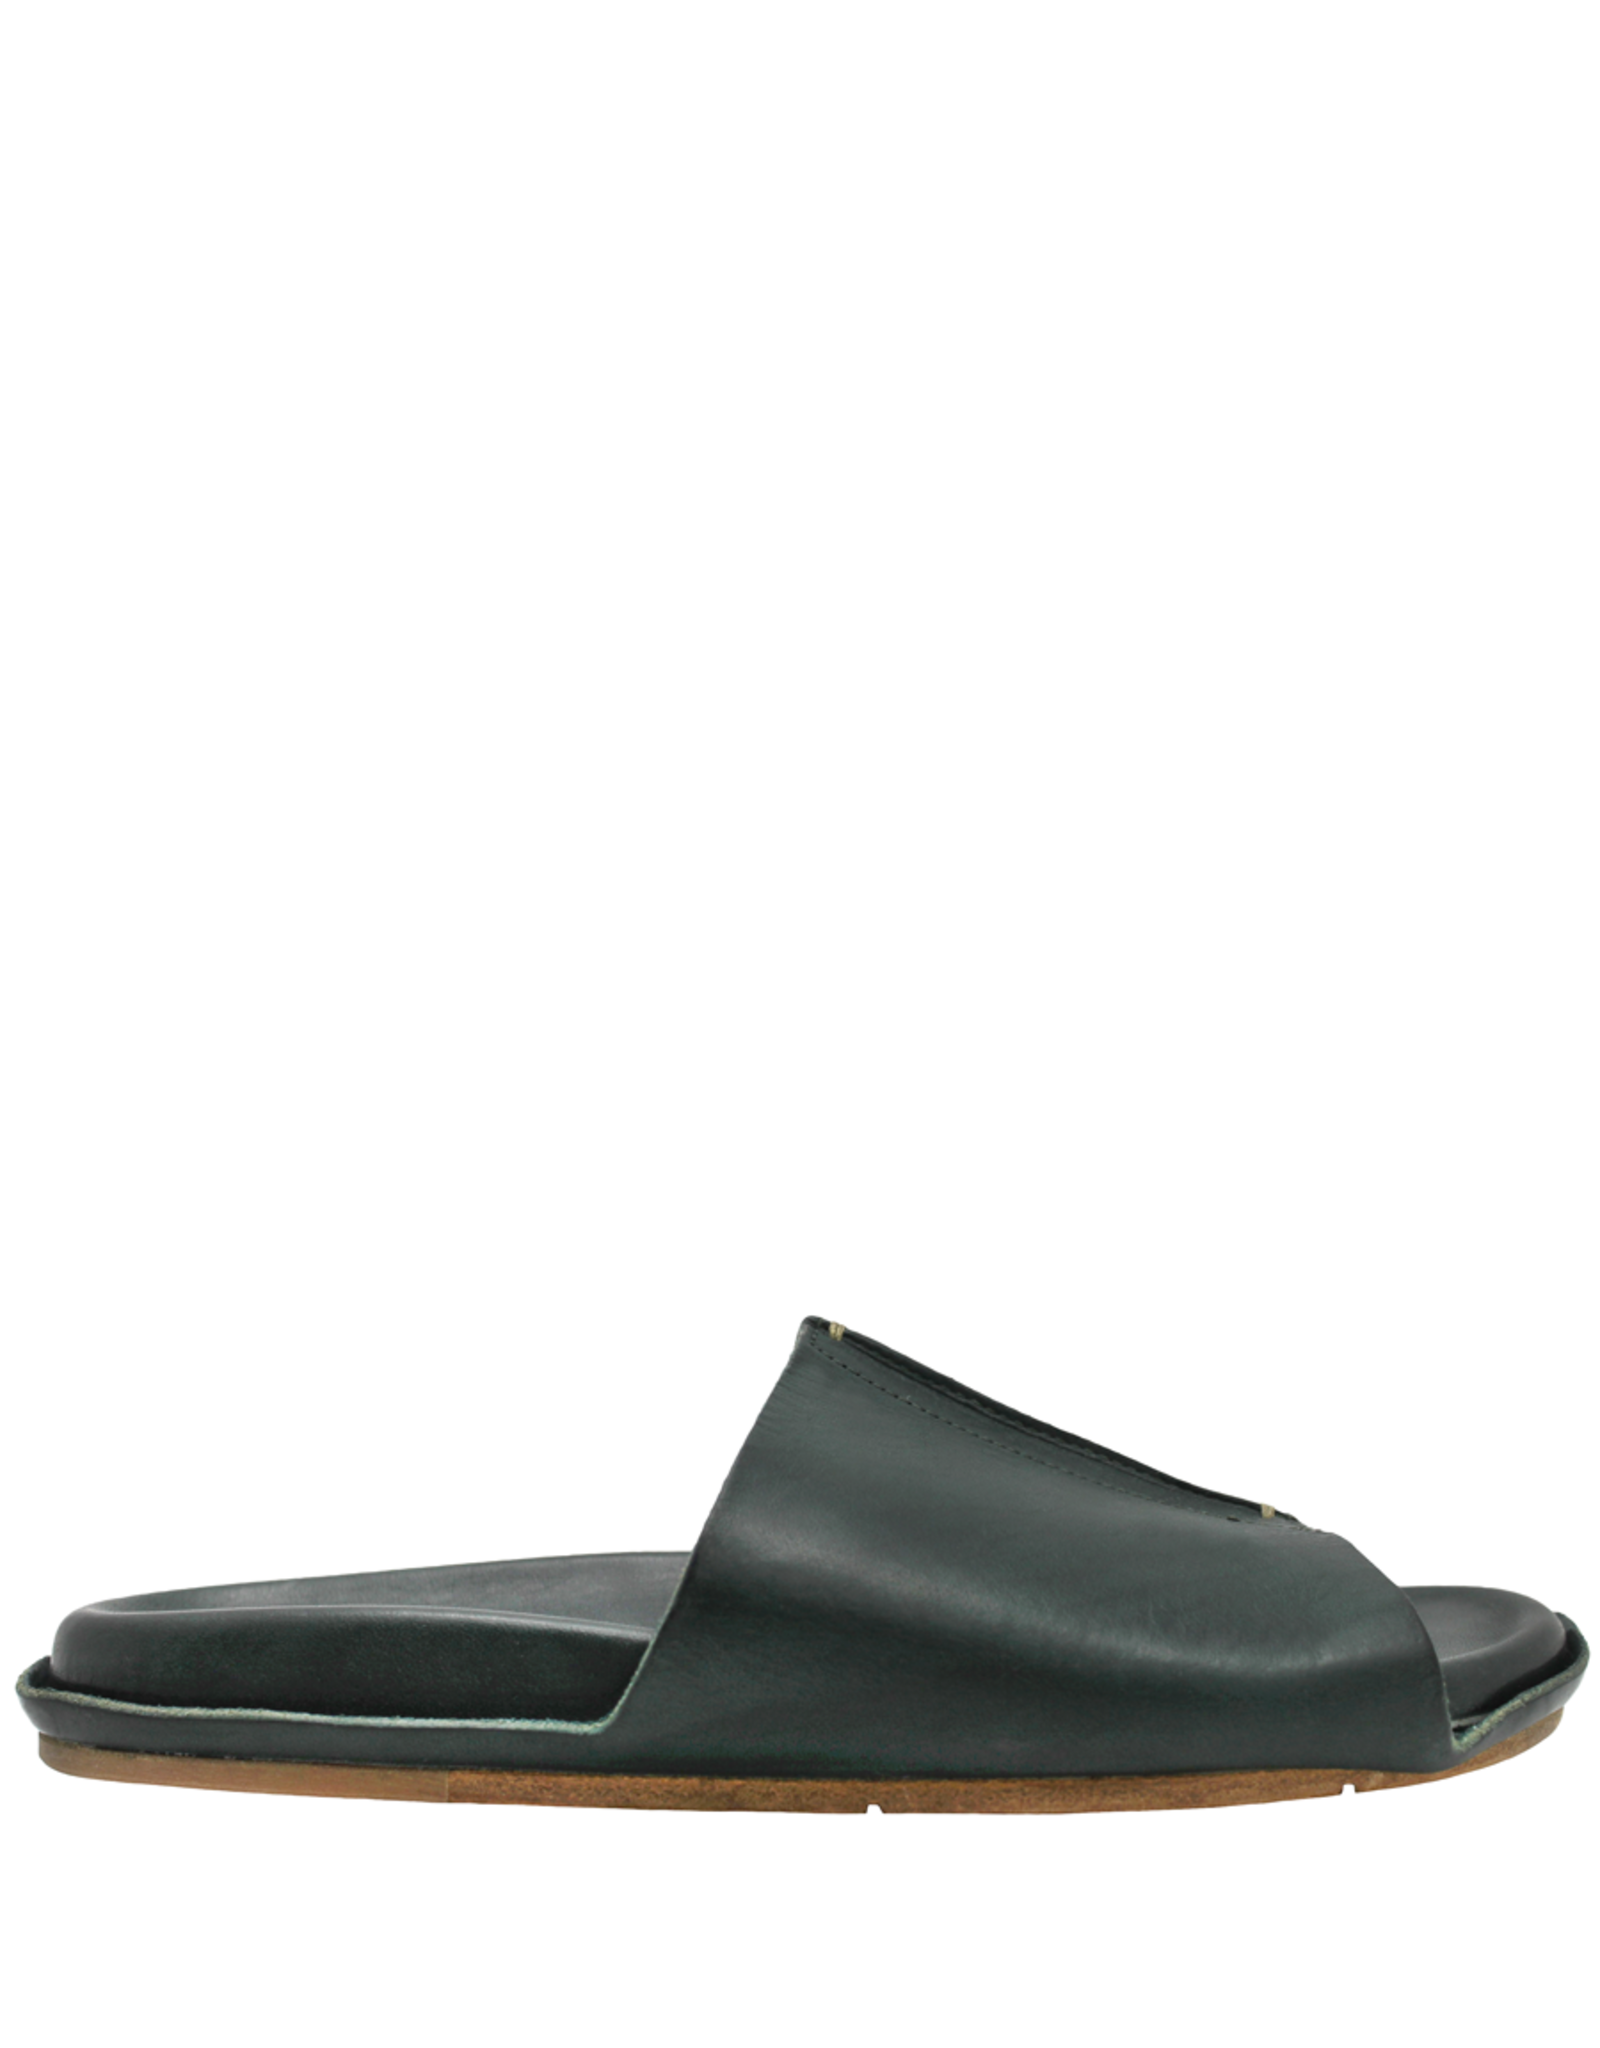 Moma Moma- Verde Mule With Ergonomic Footbed  2141